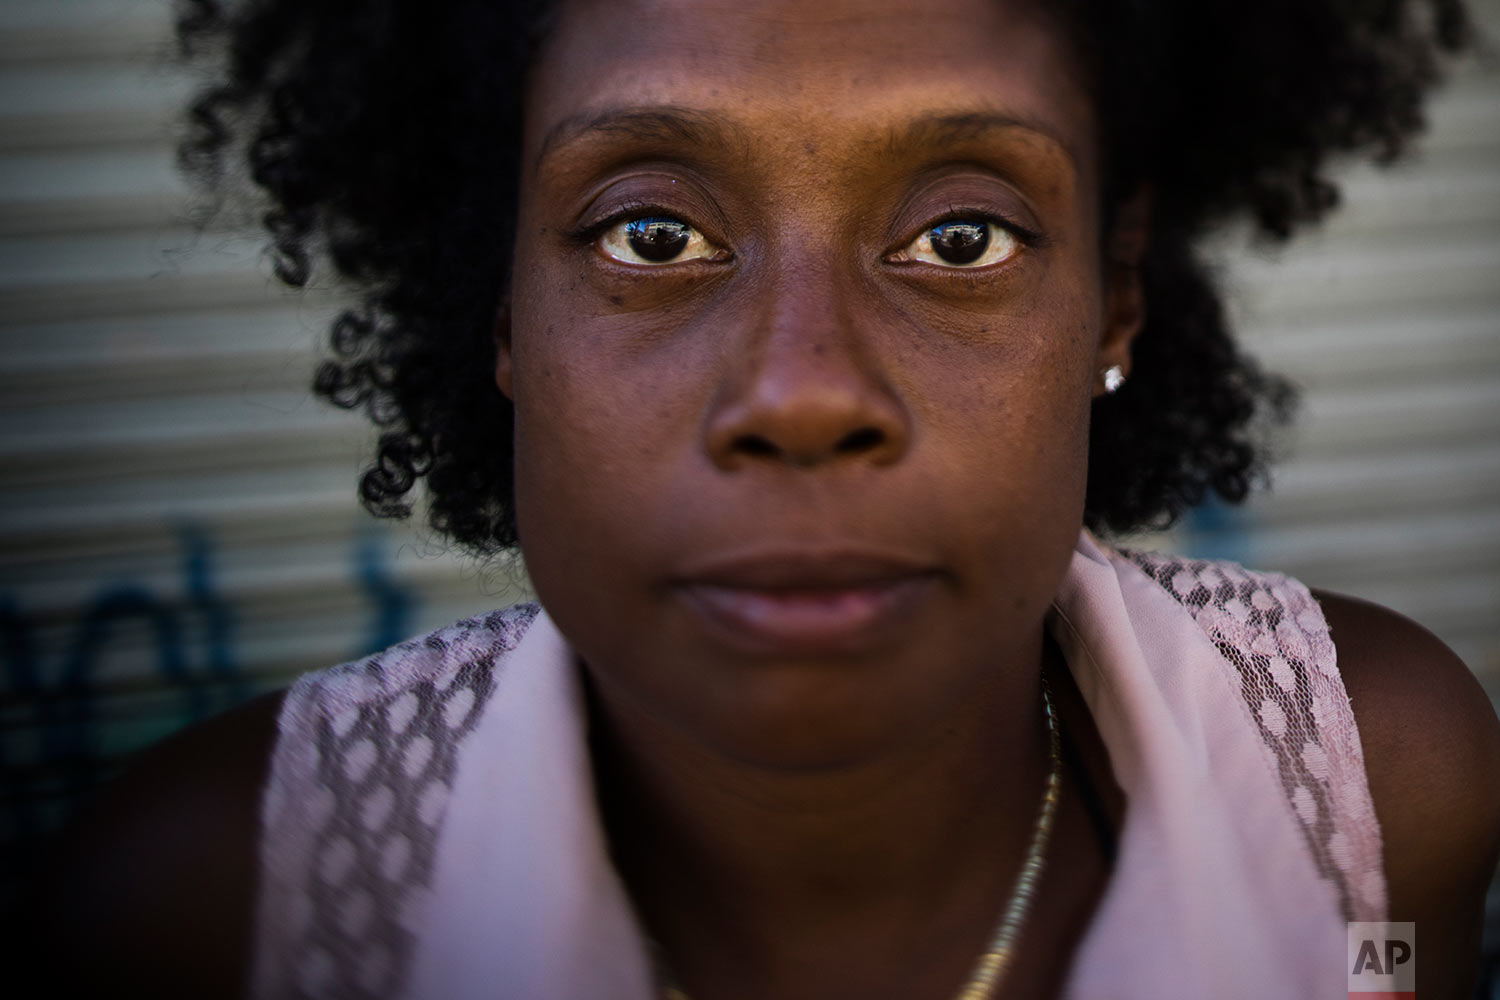 Dolores Epps, 41, pauses for photos Thursday, Oct. 26, 2017, in Los Angeles. Epps, a mother of two children who has been homeless for five years, does hair for a living and wants to open her own mission one day. (AP Photo/Jae C. Hong)